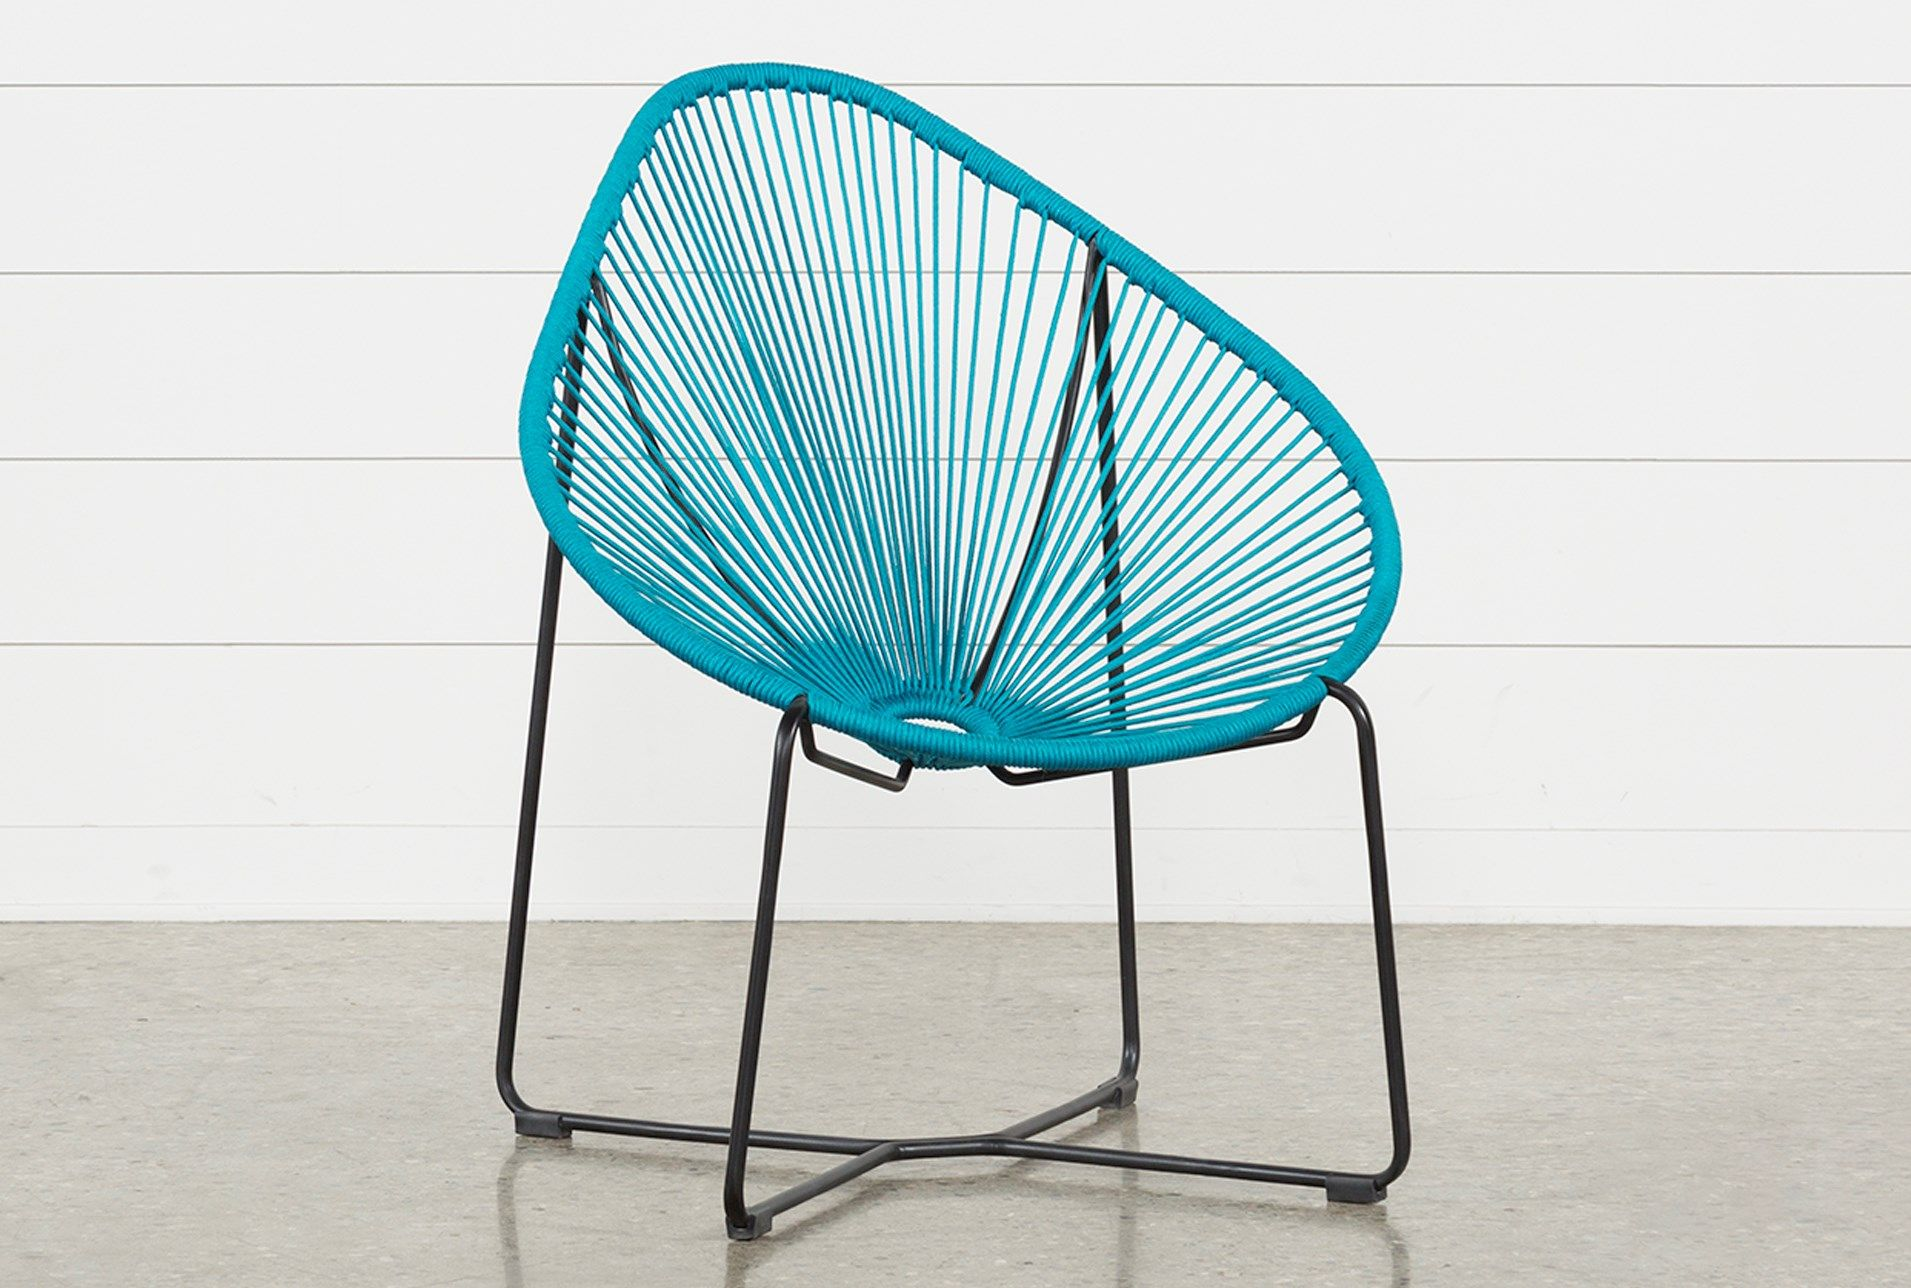 Groovy Outdoor Acapulco Turquoise Rope Chair In 2019 Austin Camellatalisay Diy Chair Ideas Camellatalisaycom